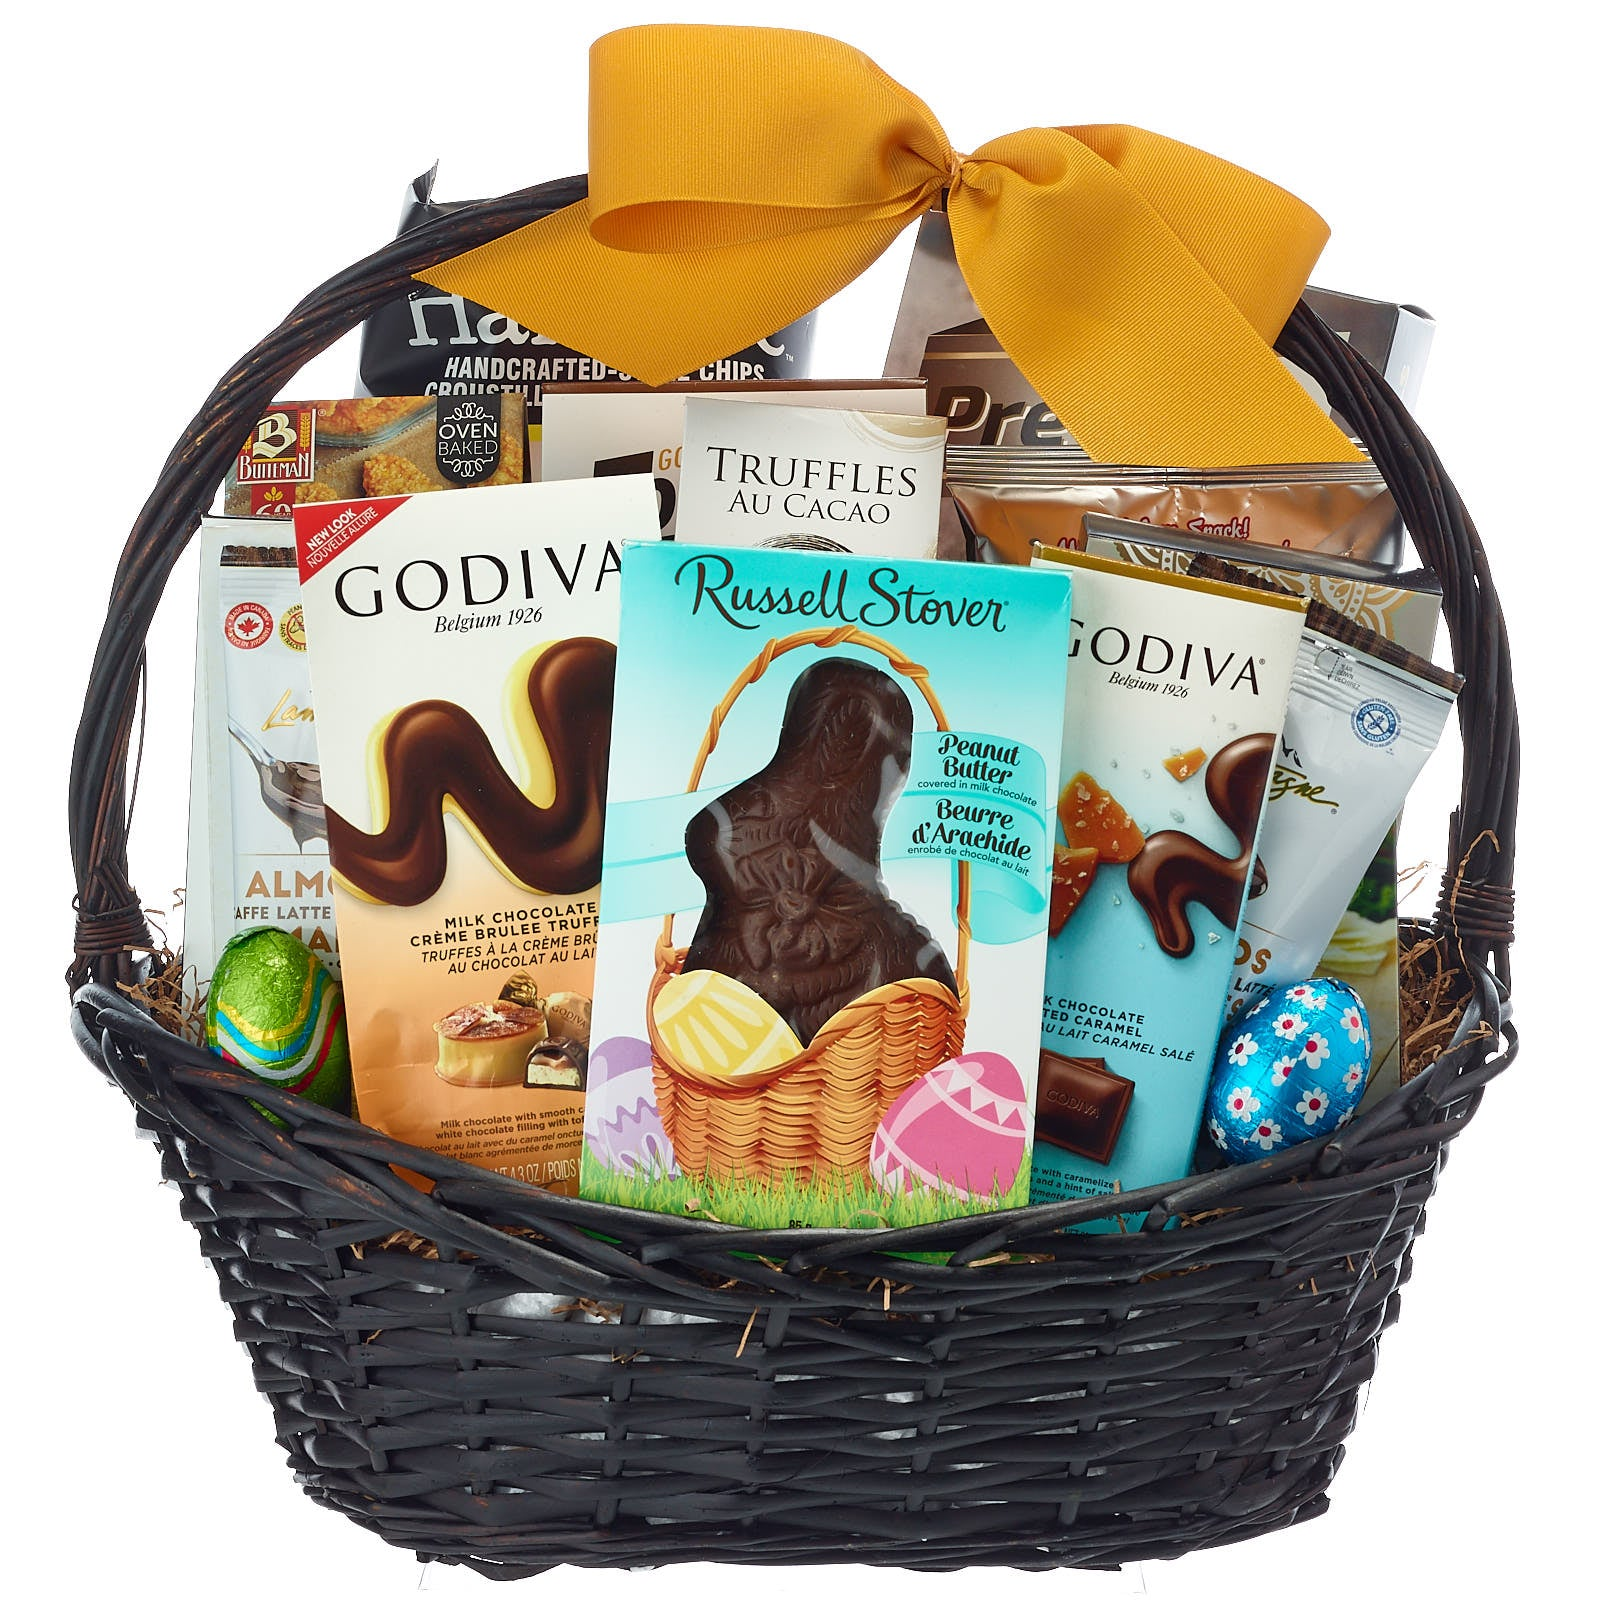 EasterGift Baskets Online For Family